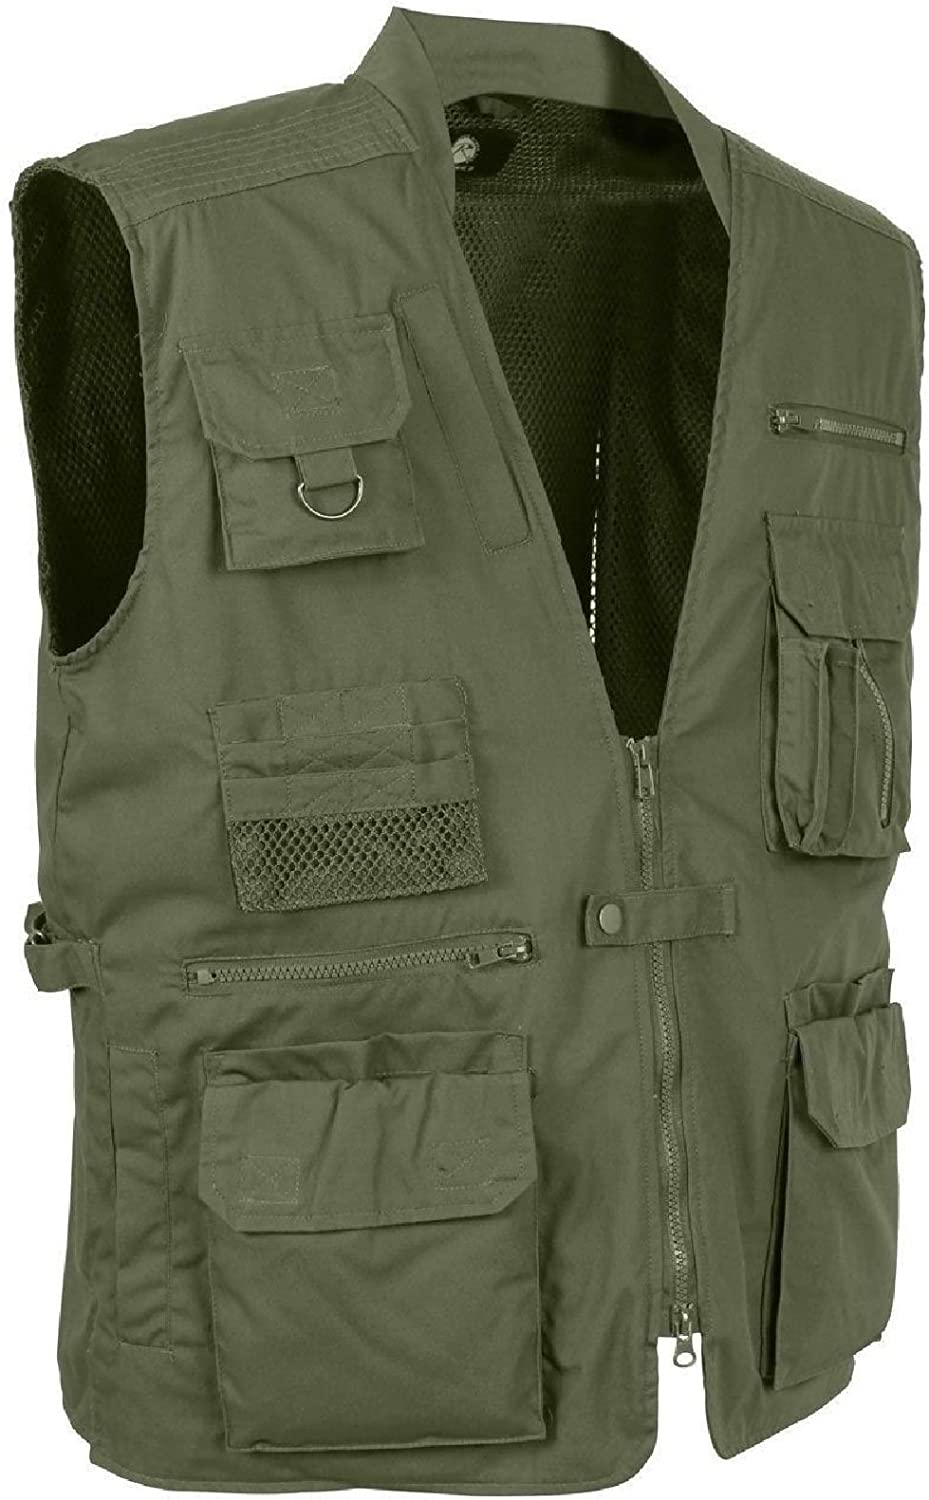 Olive Drab multi-pocket Cargo Tactical Concealed Carry Travelベスト  3X-Large